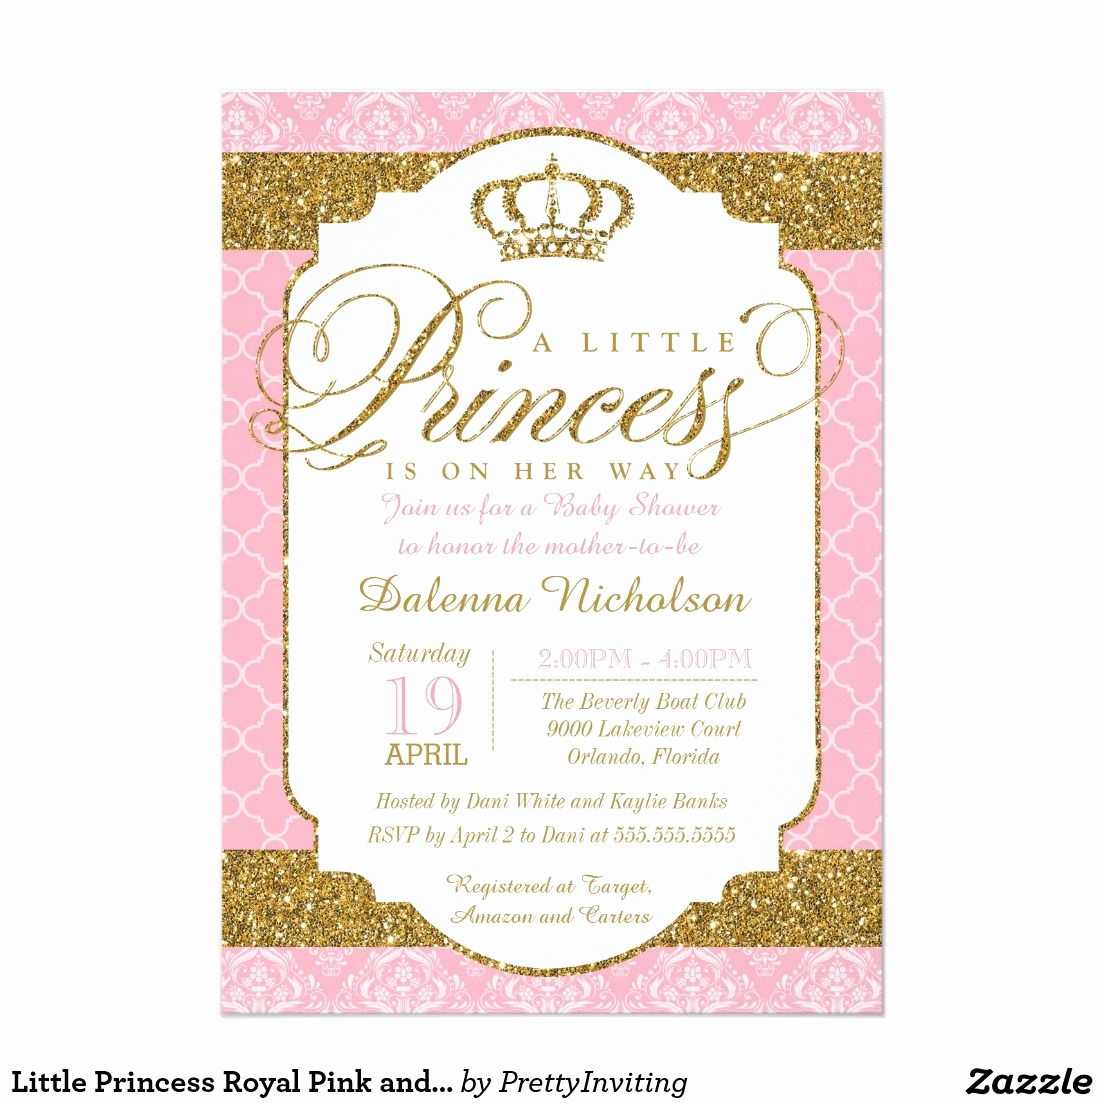 Princess Baby Shower Invitations Best Of Little Princess Royal Pink and Gold Baby Shower 5x7 Paper